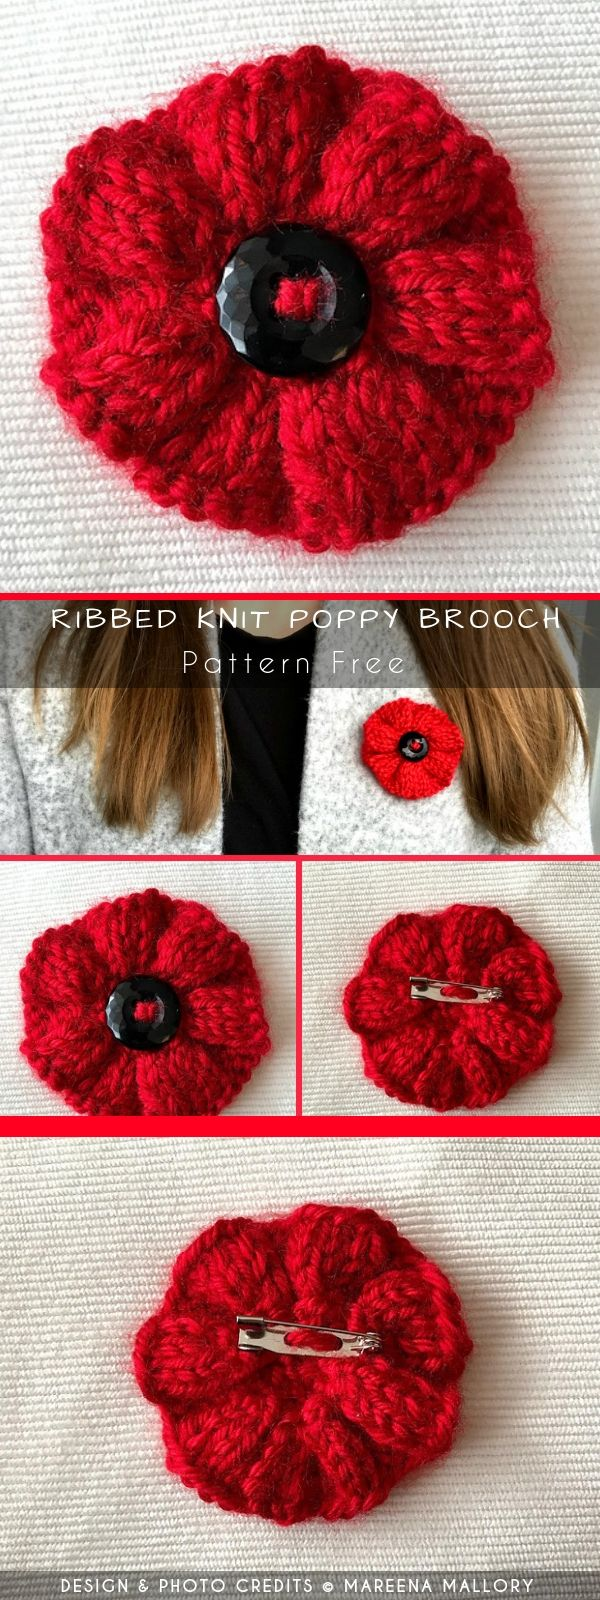 Ribbed Knit Poppy Brooch | Knitted poppies, Knitted flower ...